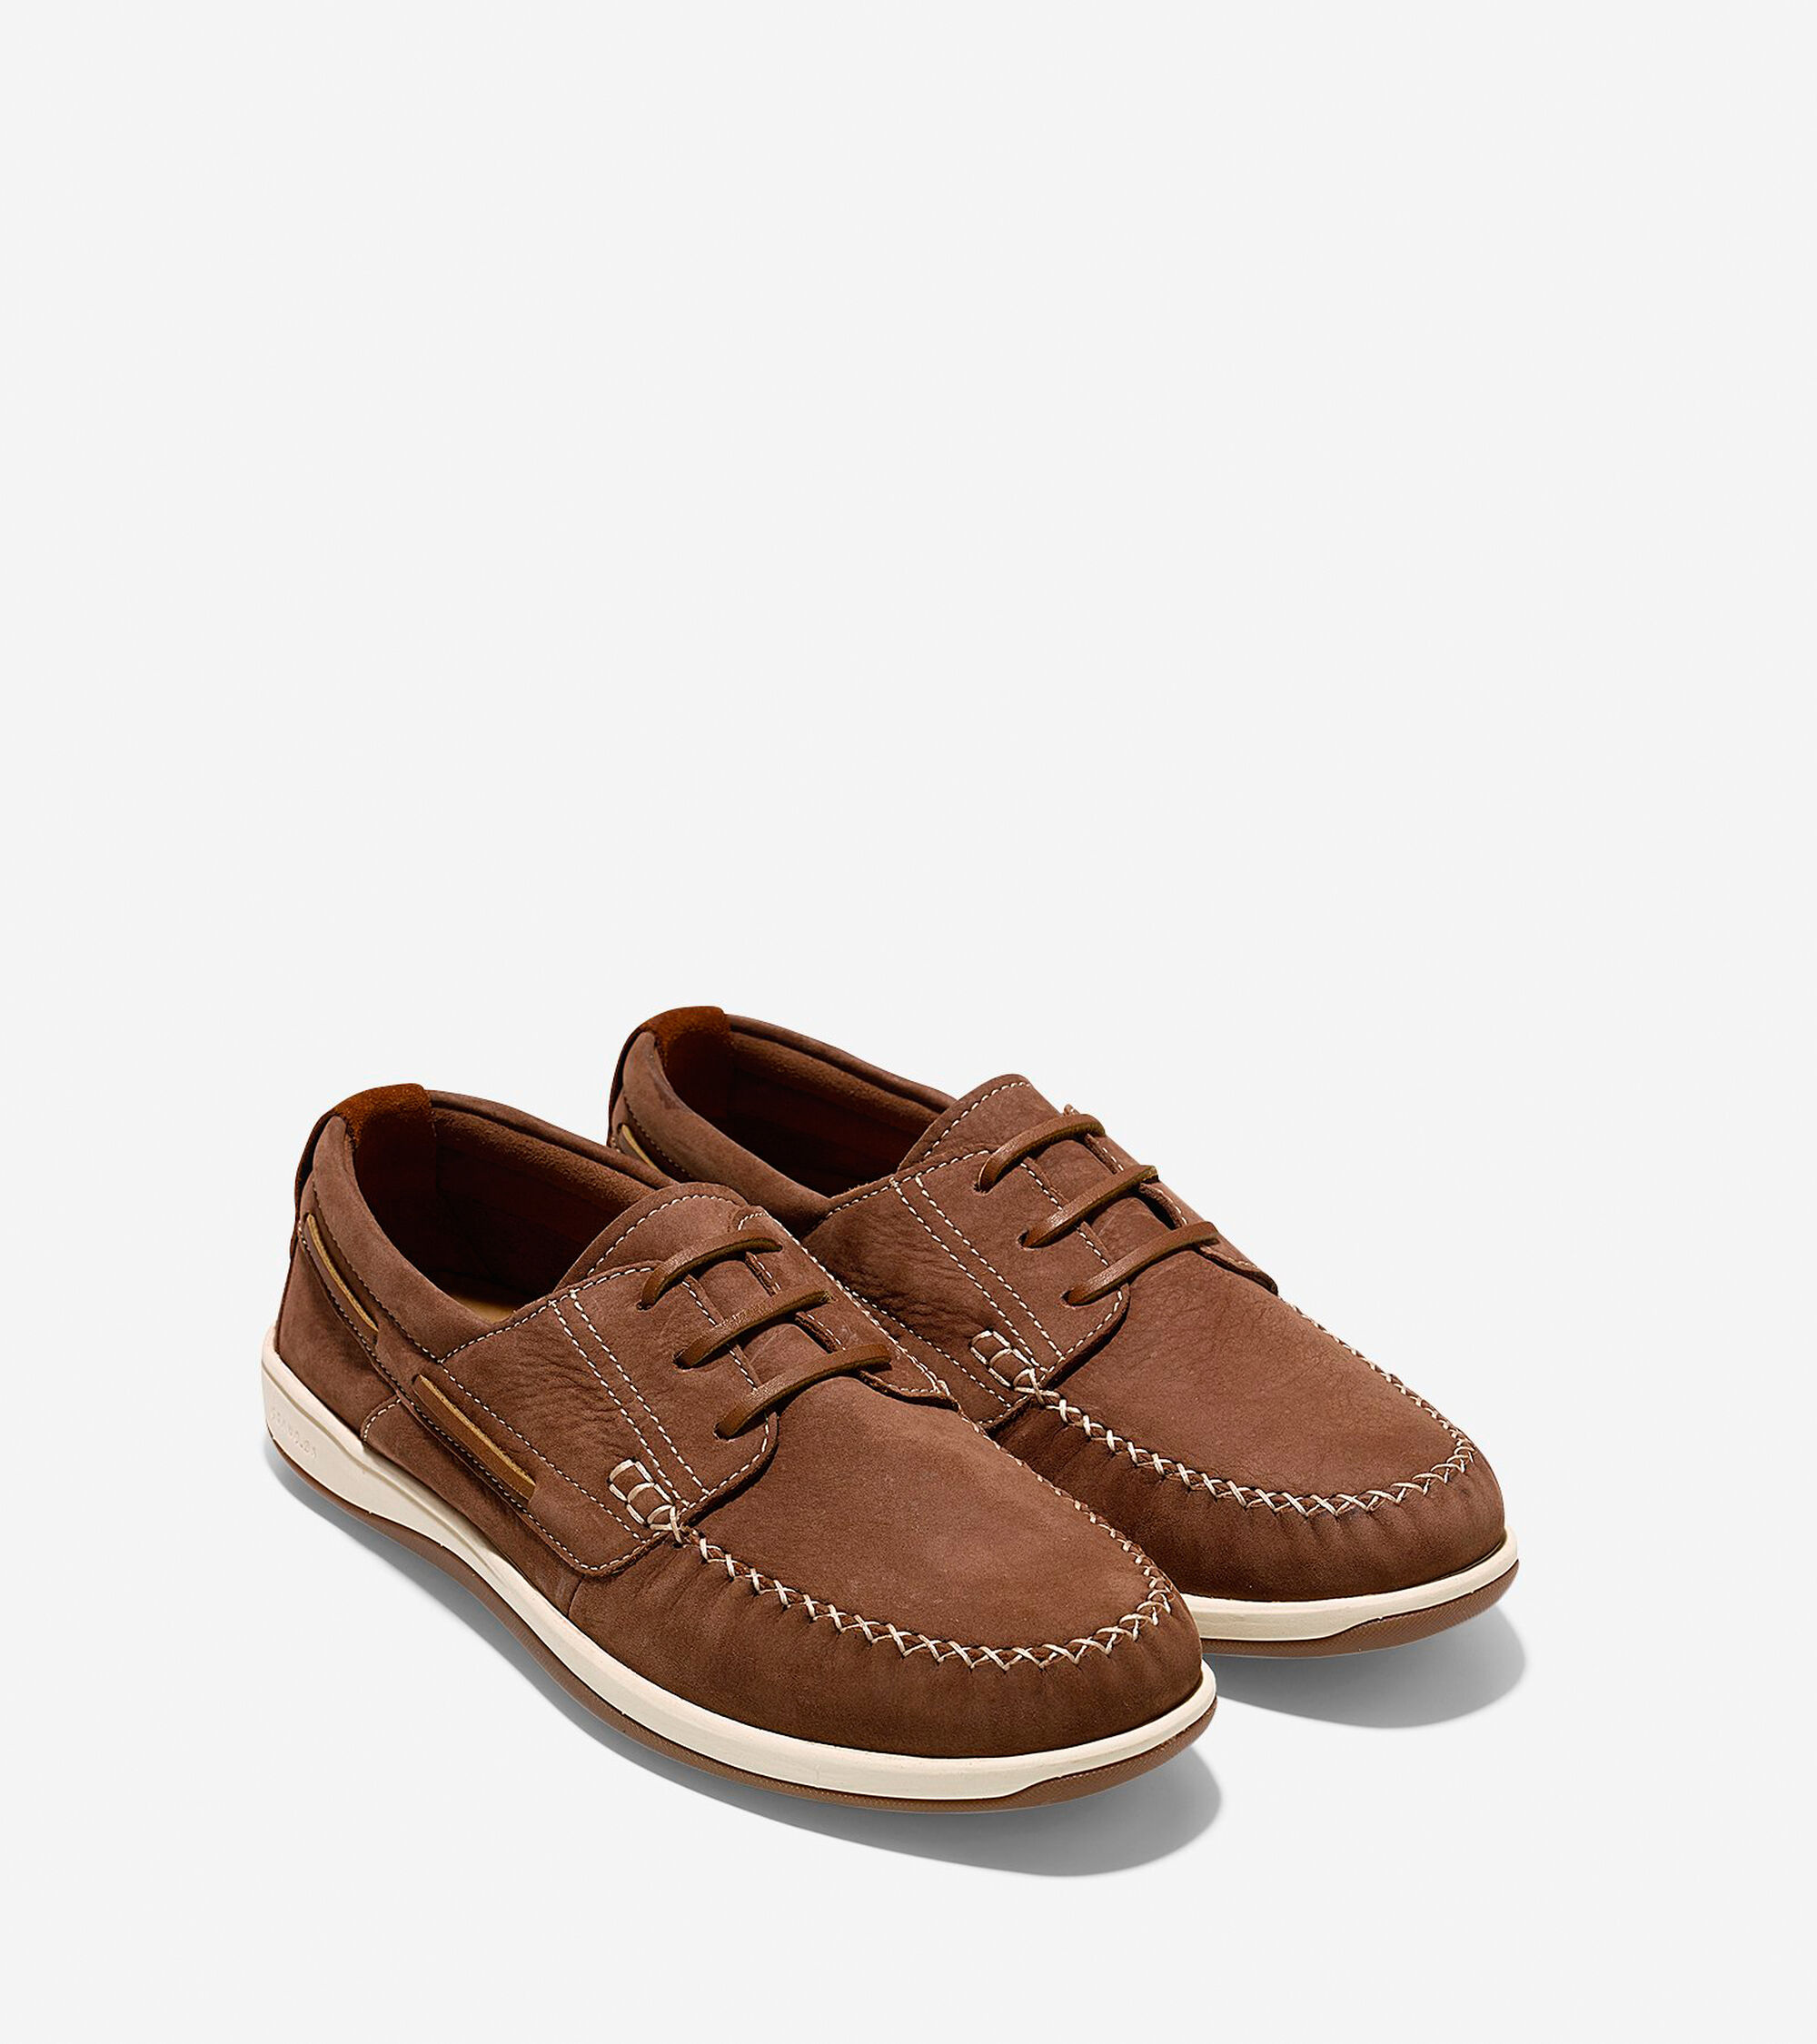 Cole Haan Tennis Shoes Mens